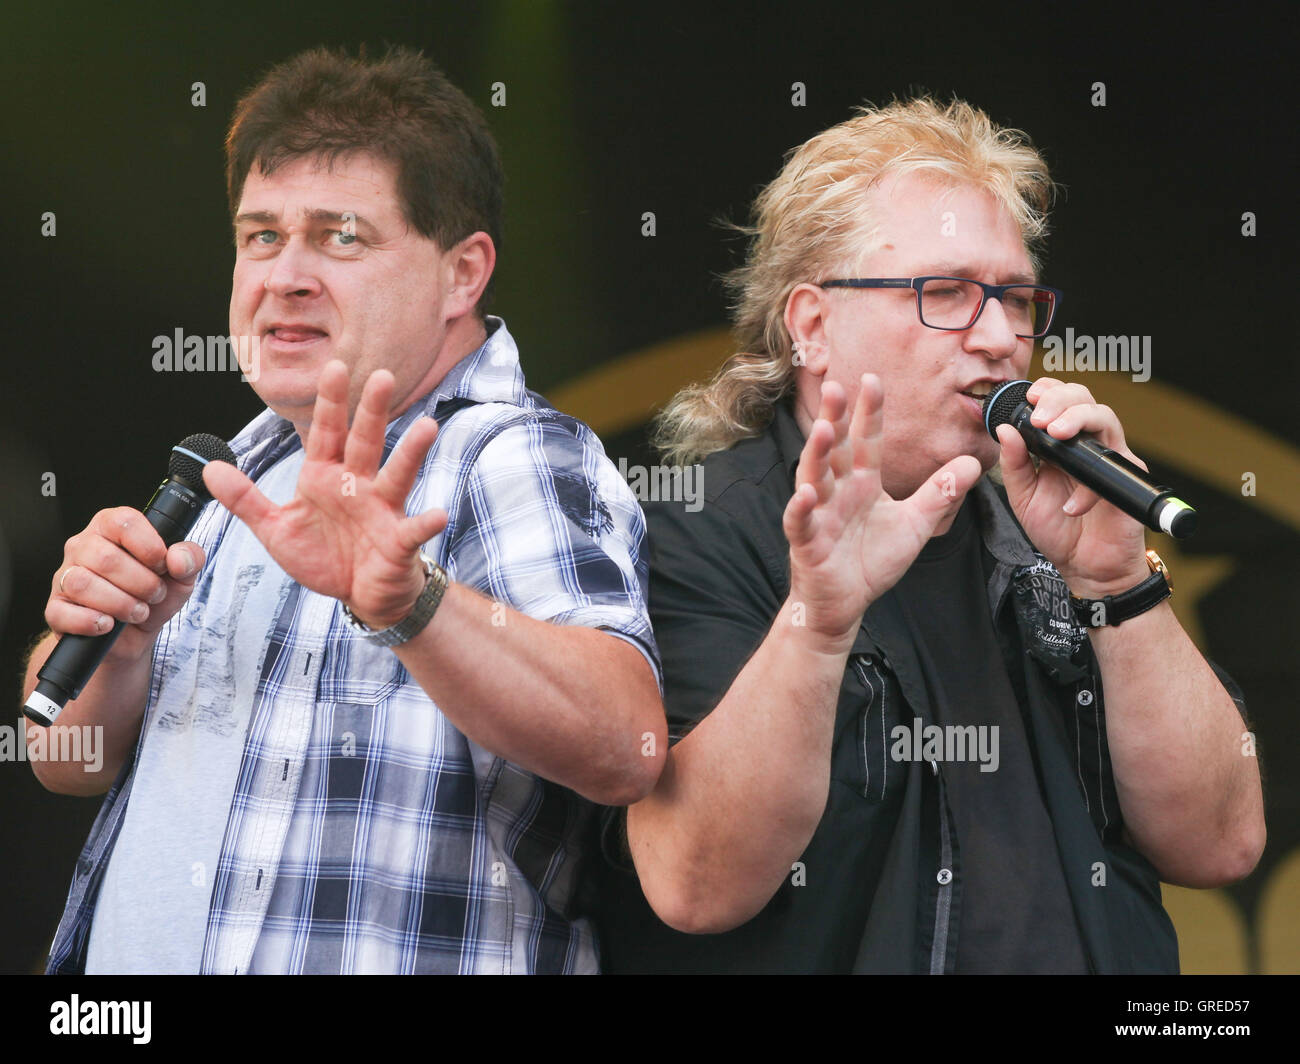 Duo Olaf Amp Hans - Stock Image